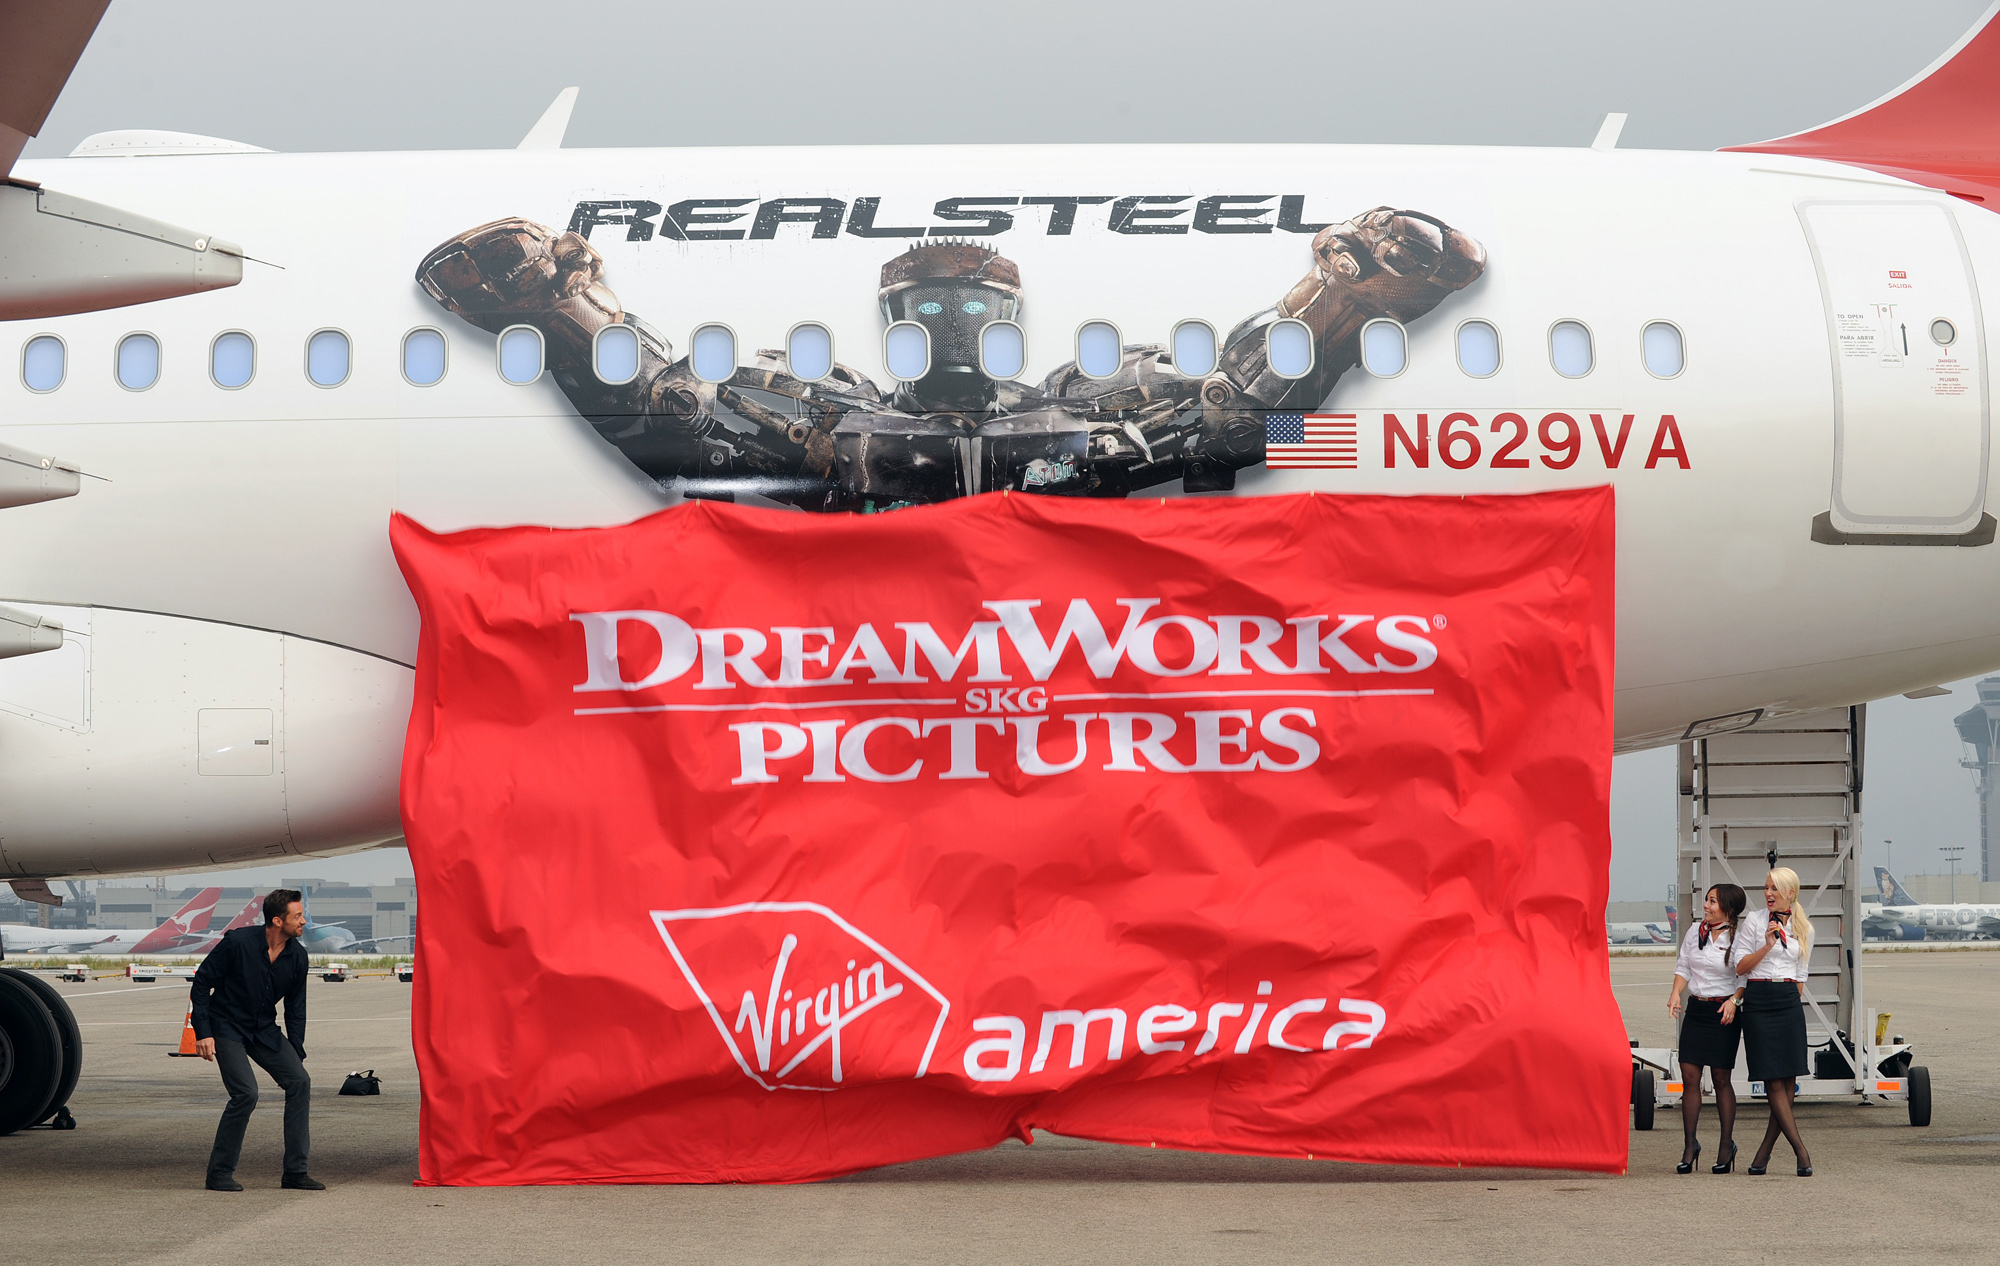 Virgin America Airlines teams with DreamWorks Pictures